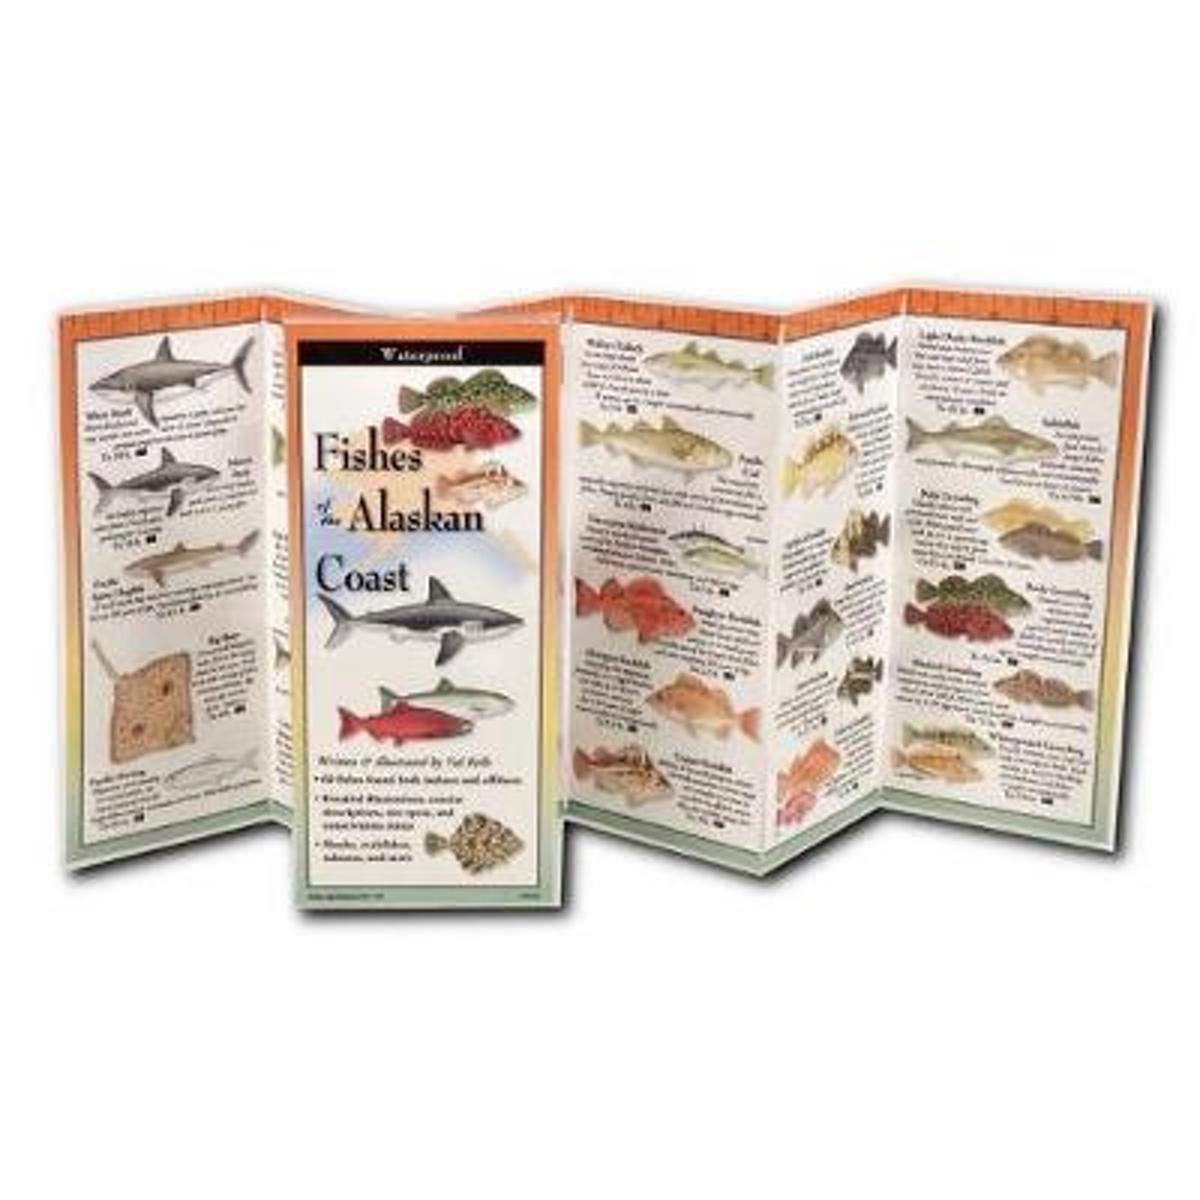 Fishes of the Alaskan Coast